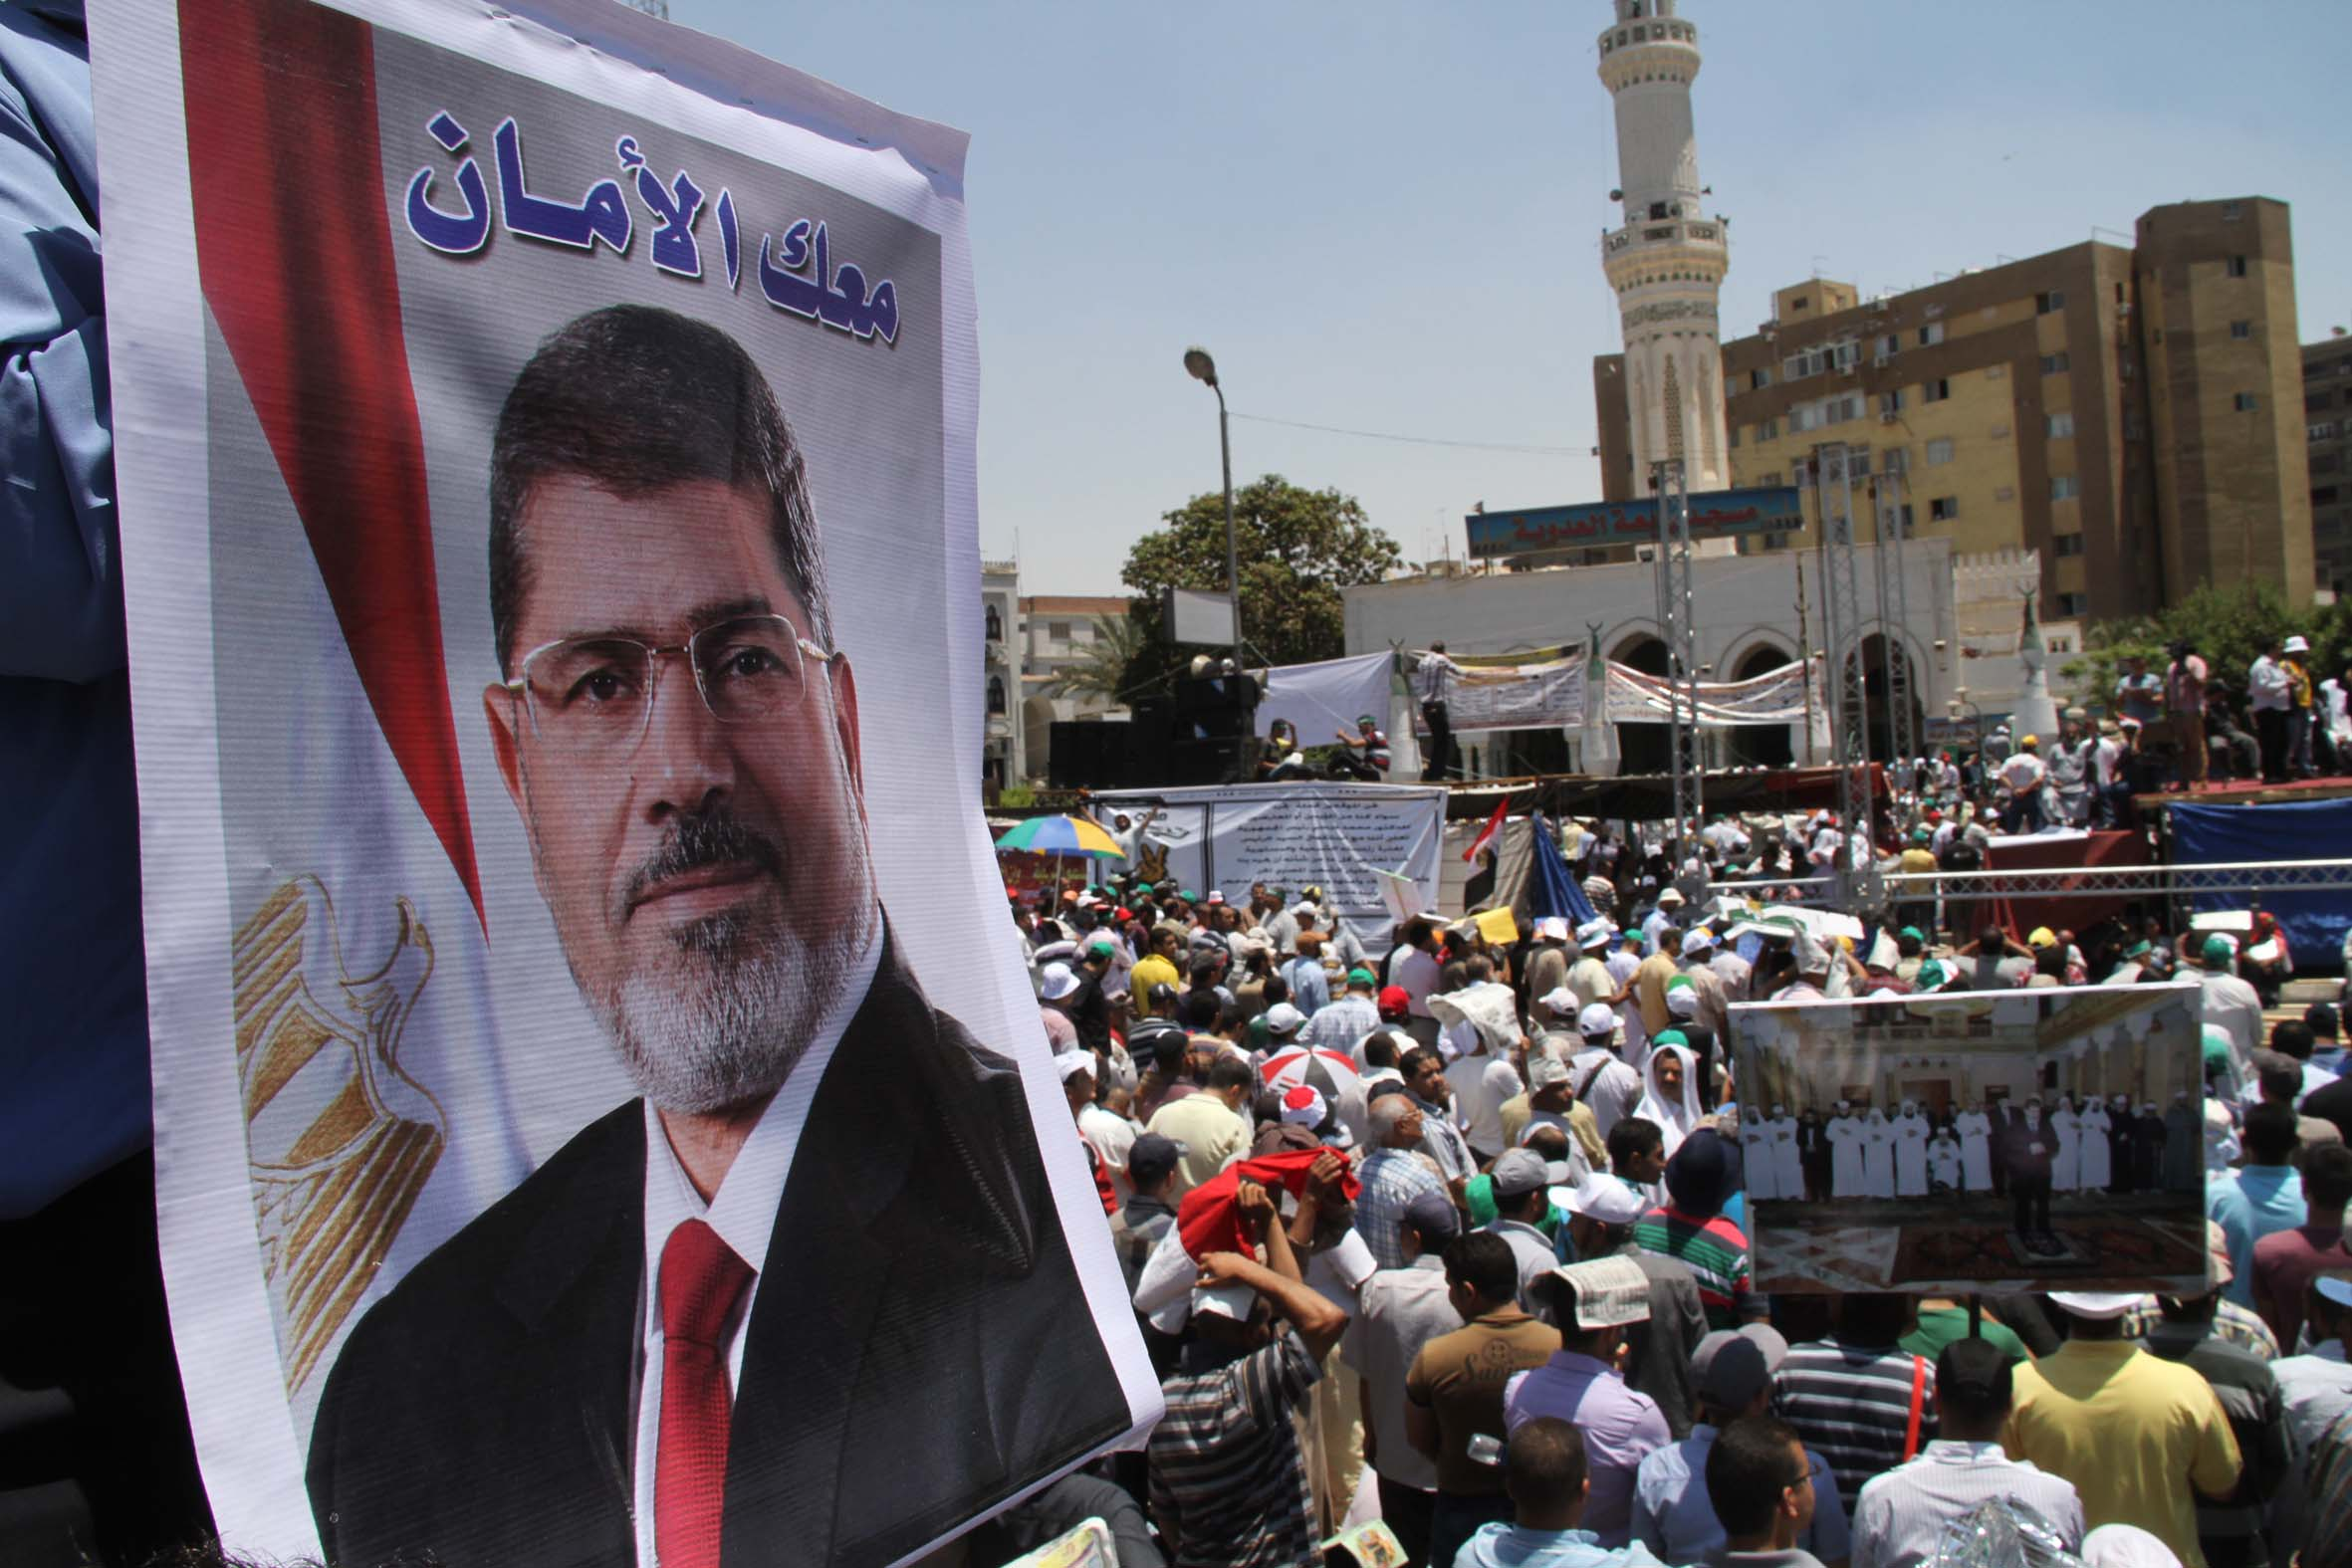 Thousands of President Morsi's supporters demonstrated on Friday in anticipation of upcoming opposition protests (Photo by Mohamed Omar/DNE)